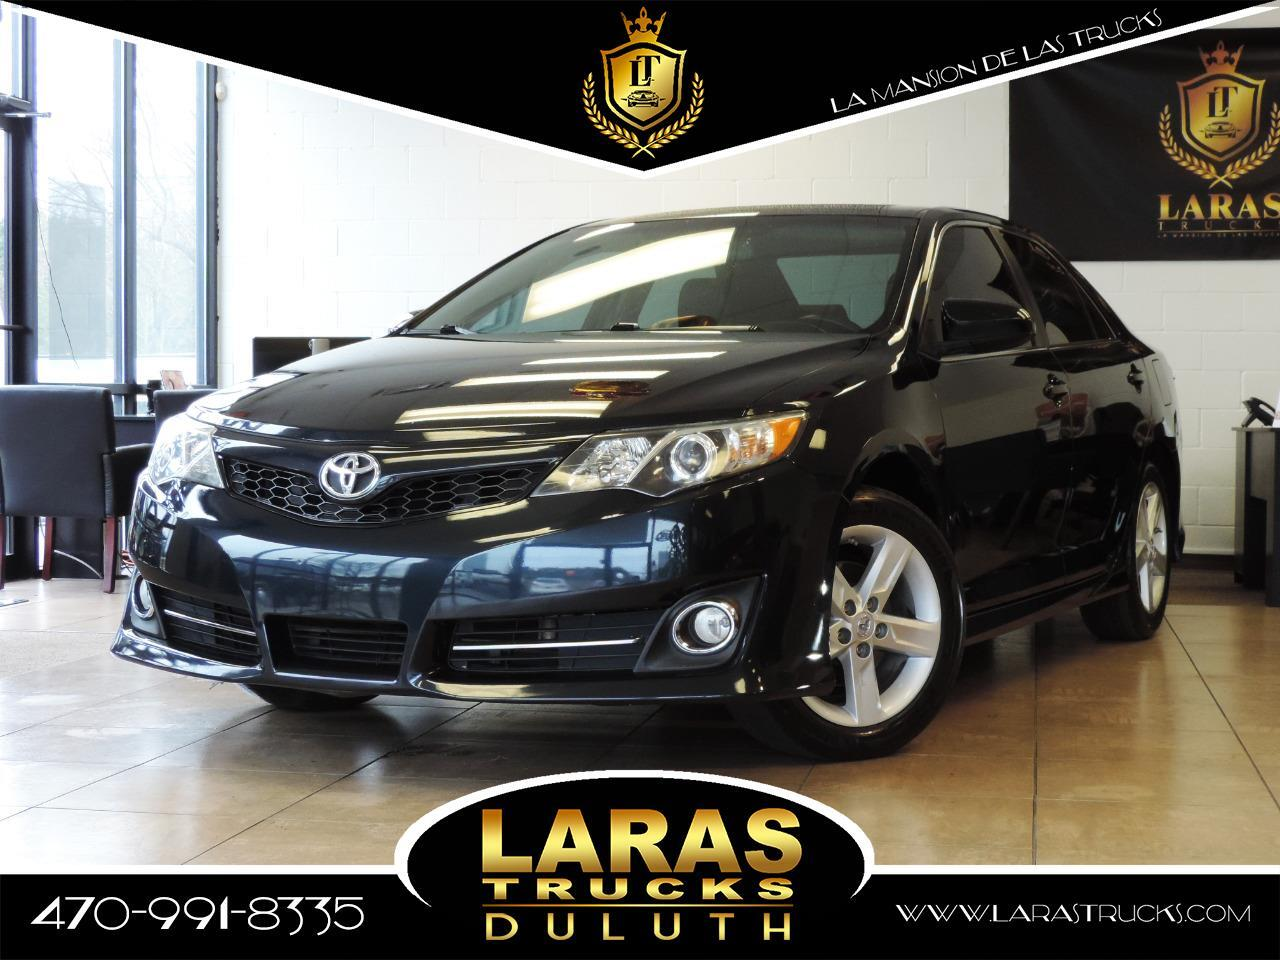 2014 Toyota Camry 4dr Sdn SE Auto (Natl)